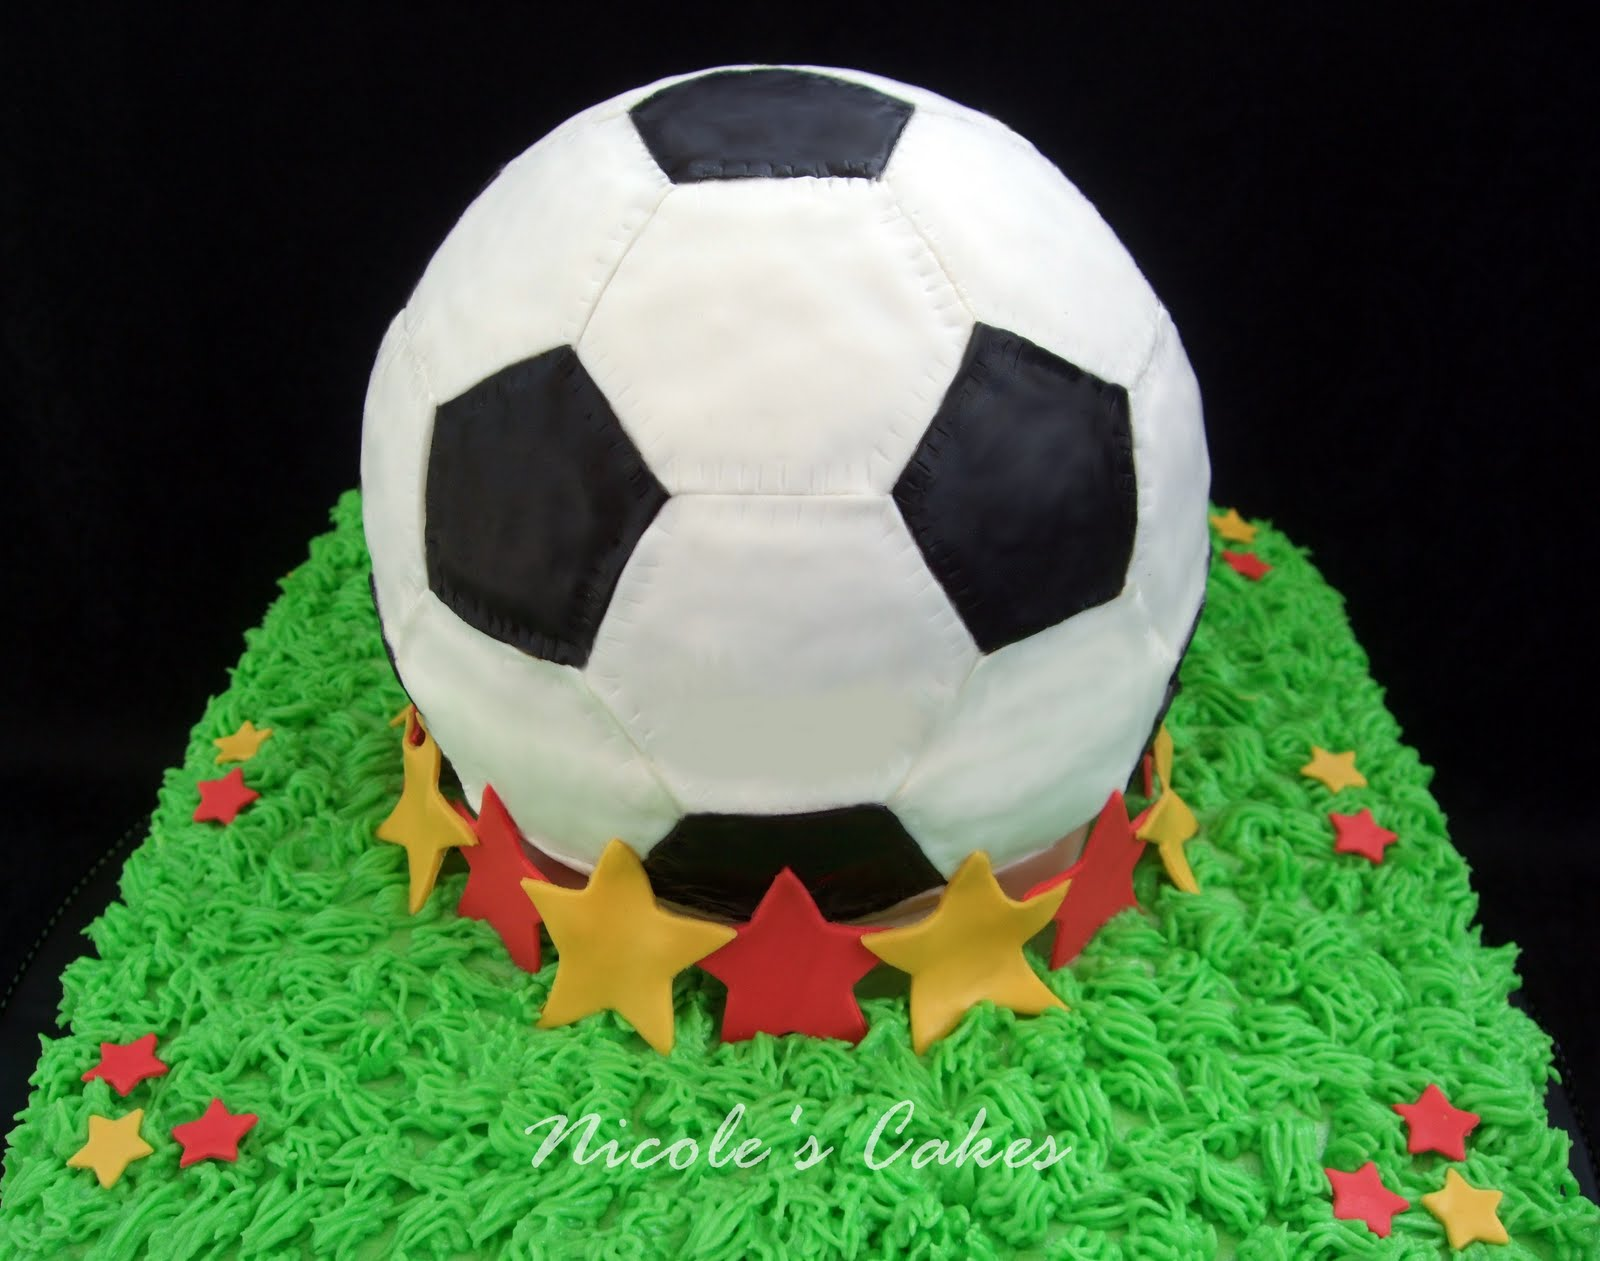 how to draw a soccer ball on a cake